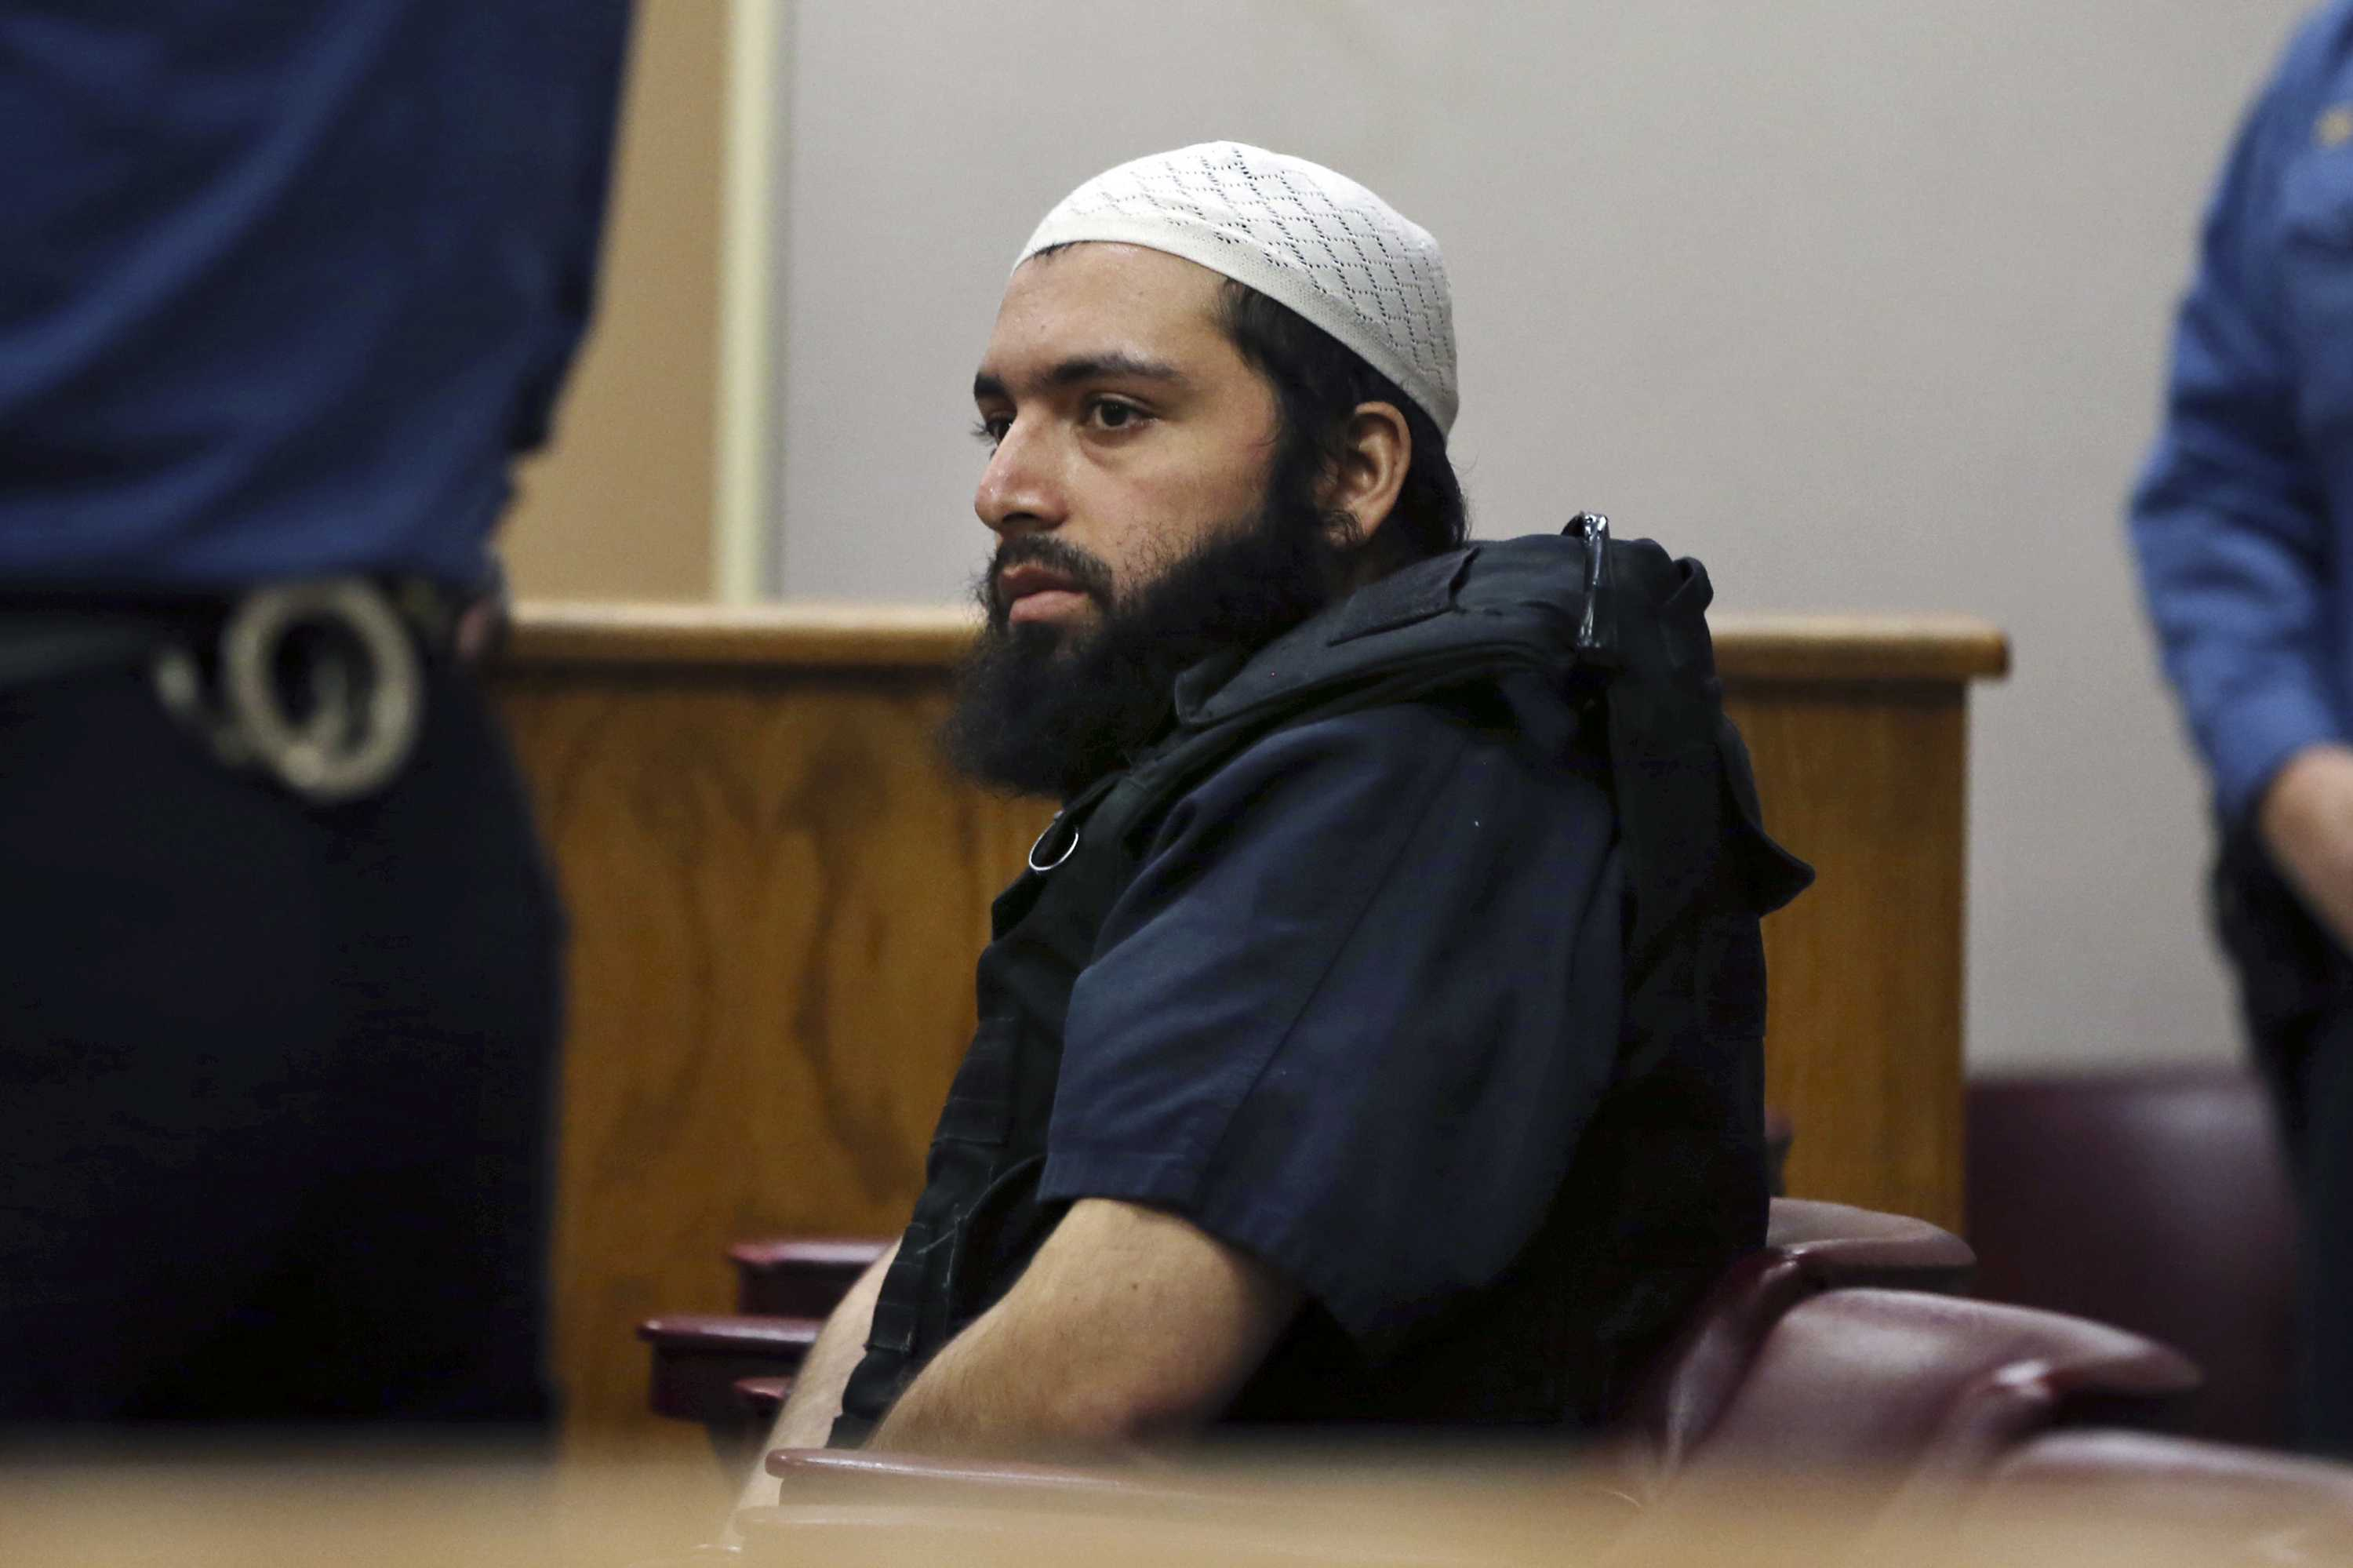 'Chelsea Bomber' Gets Two Life Sentences In New York Court